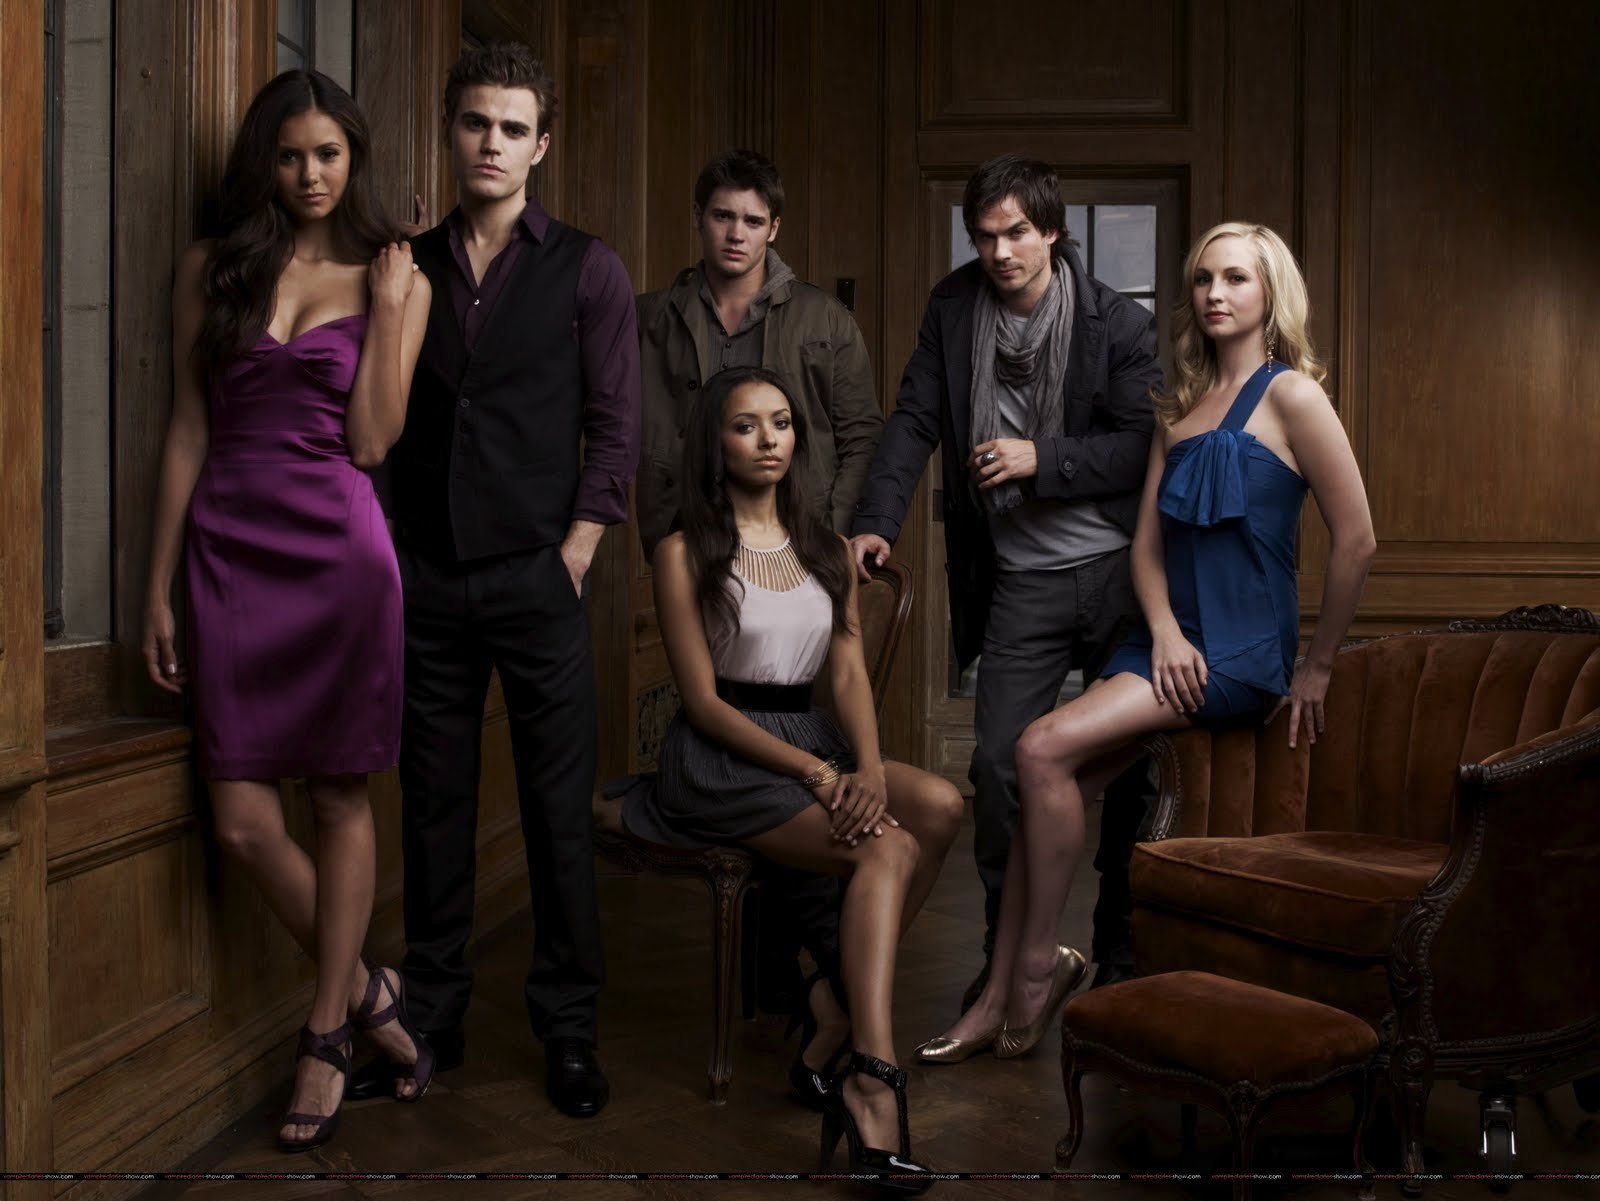 new cast promo pictures the vampire diaries tv show photo 8246073 fanpop. Black Bedroom Furniture Sets. Home Design Ideas